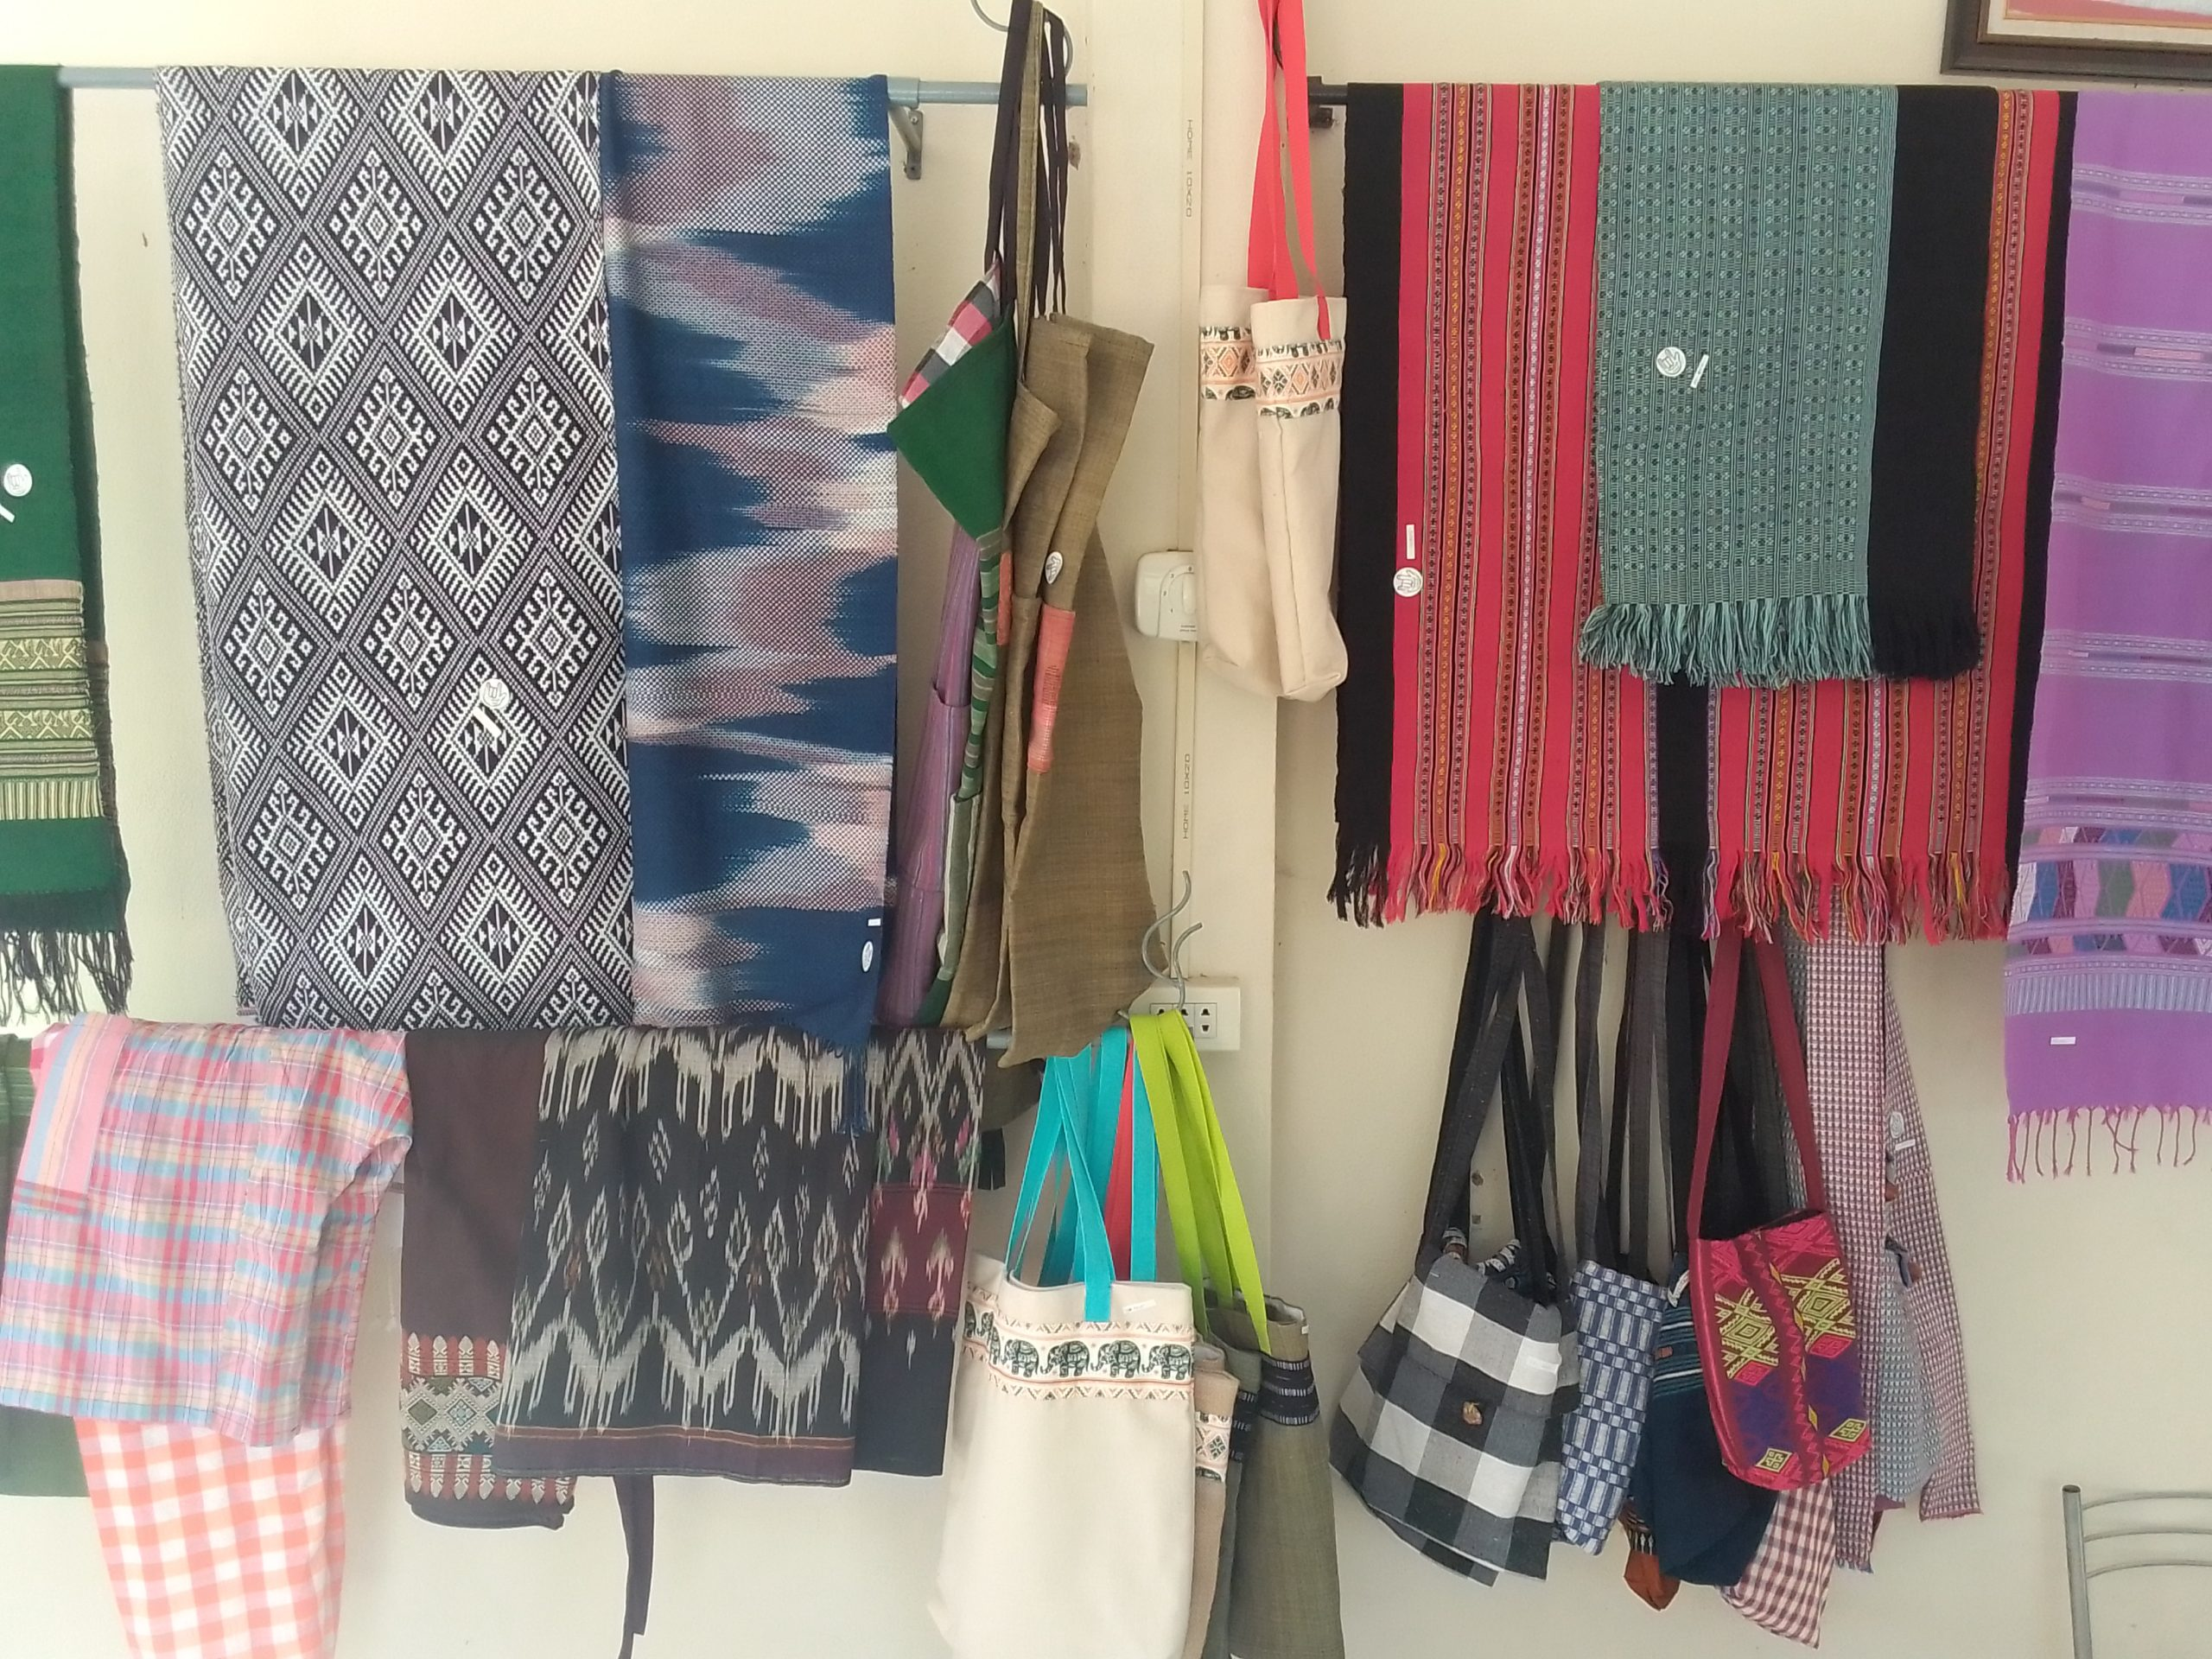 Finished products for sale include scarves & purses, Luang Prabang Deaf & Mute Community Training Centre